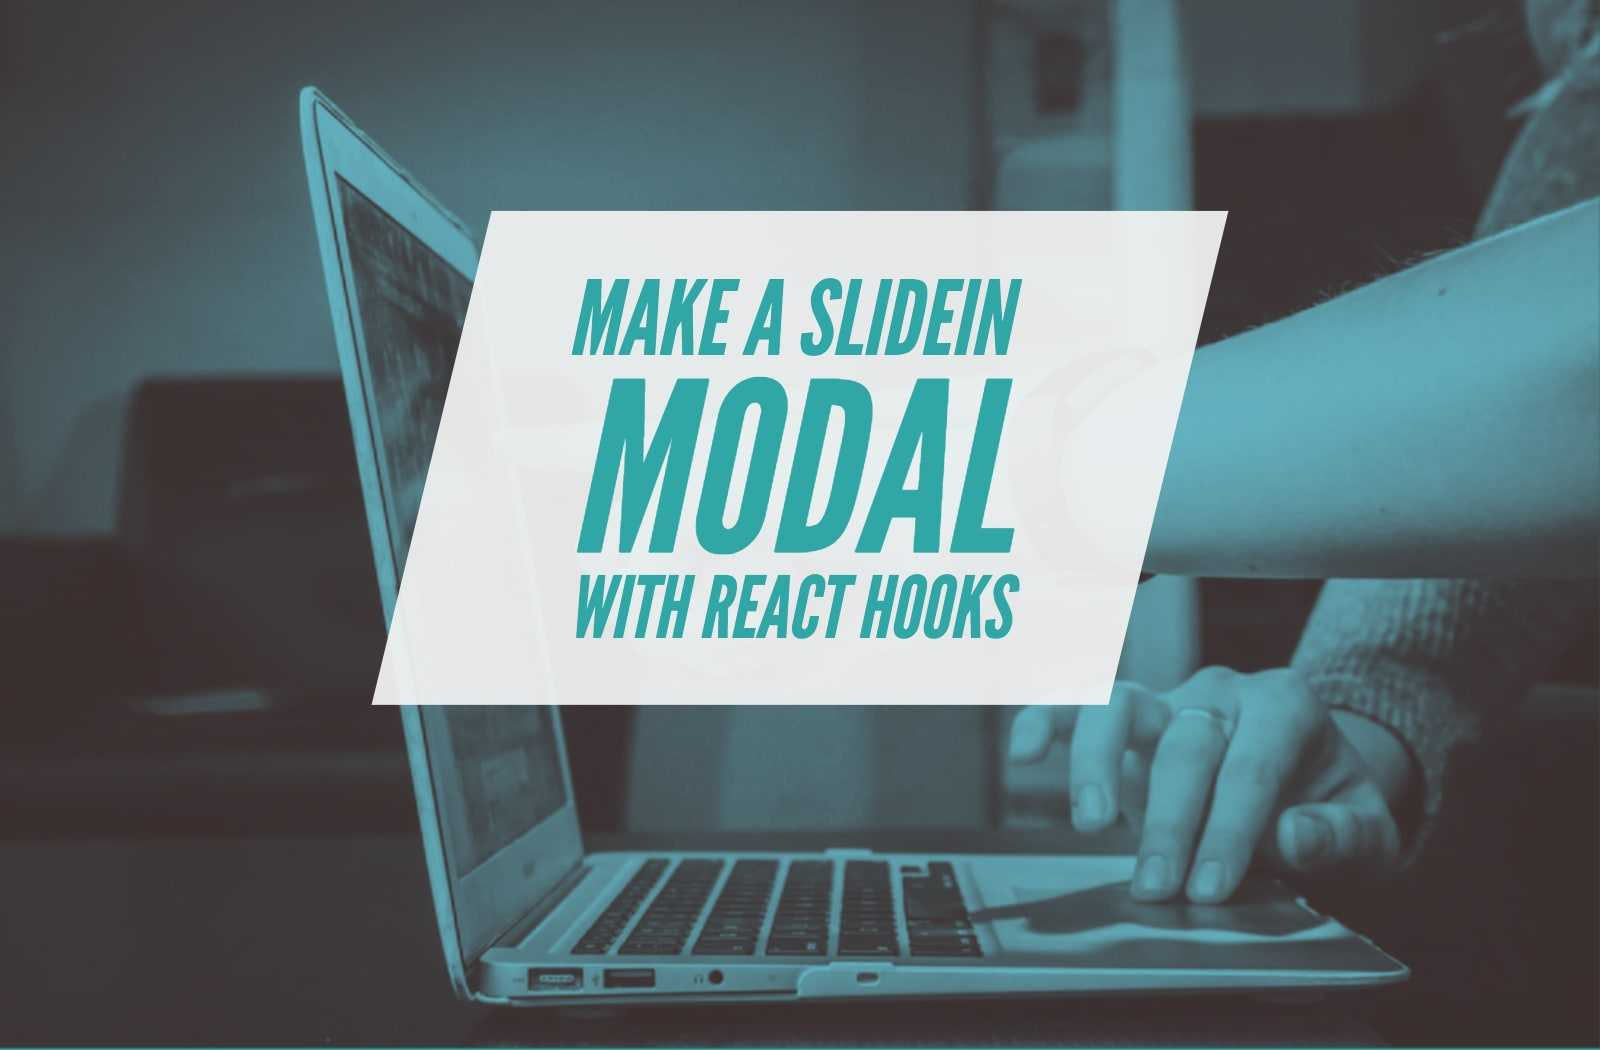 React Hooks Slide In Modal cover image